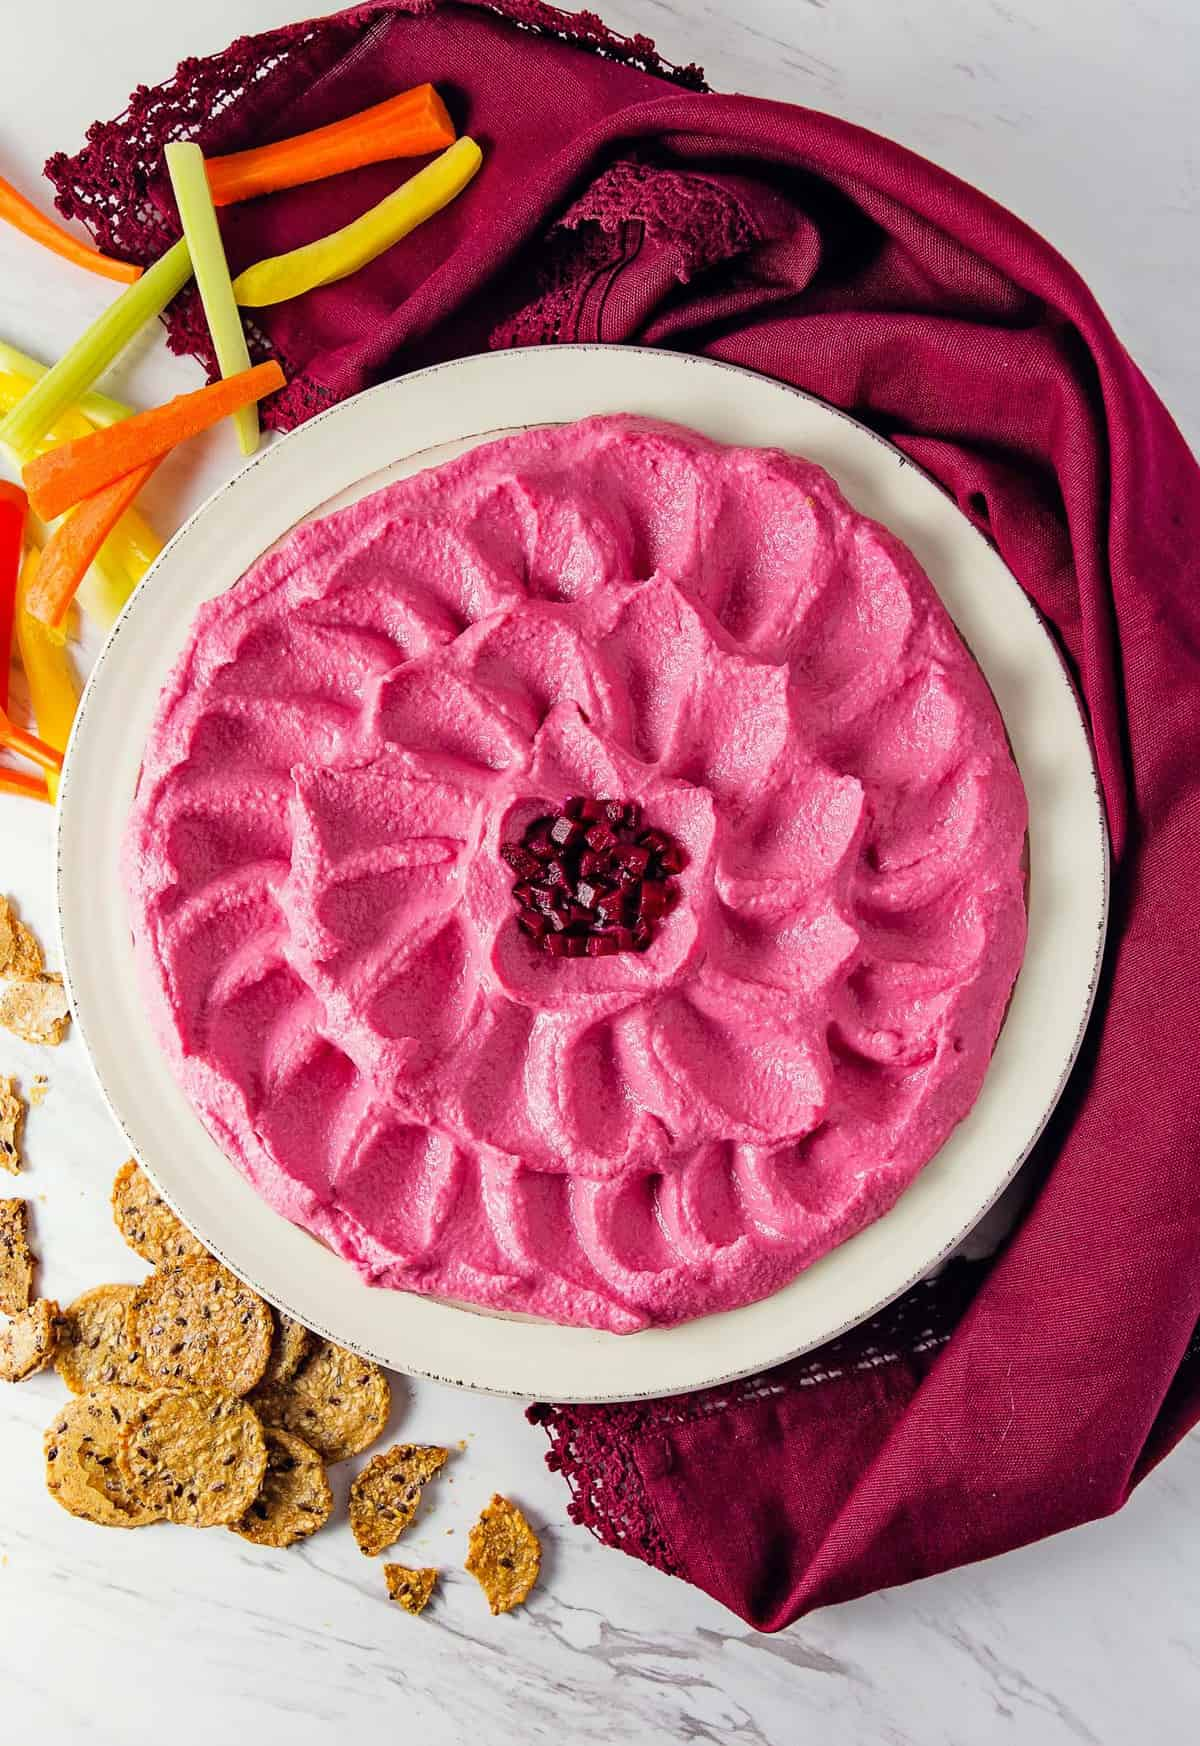 Beet Hummus, vegan, vegetarian, whole food plant based, gluten free, recipe, wfpb, healthy, oil free, no refined sugar, no oil, refined sugar free, dinner, side, side dish, dairy free, dinner party, entertaining